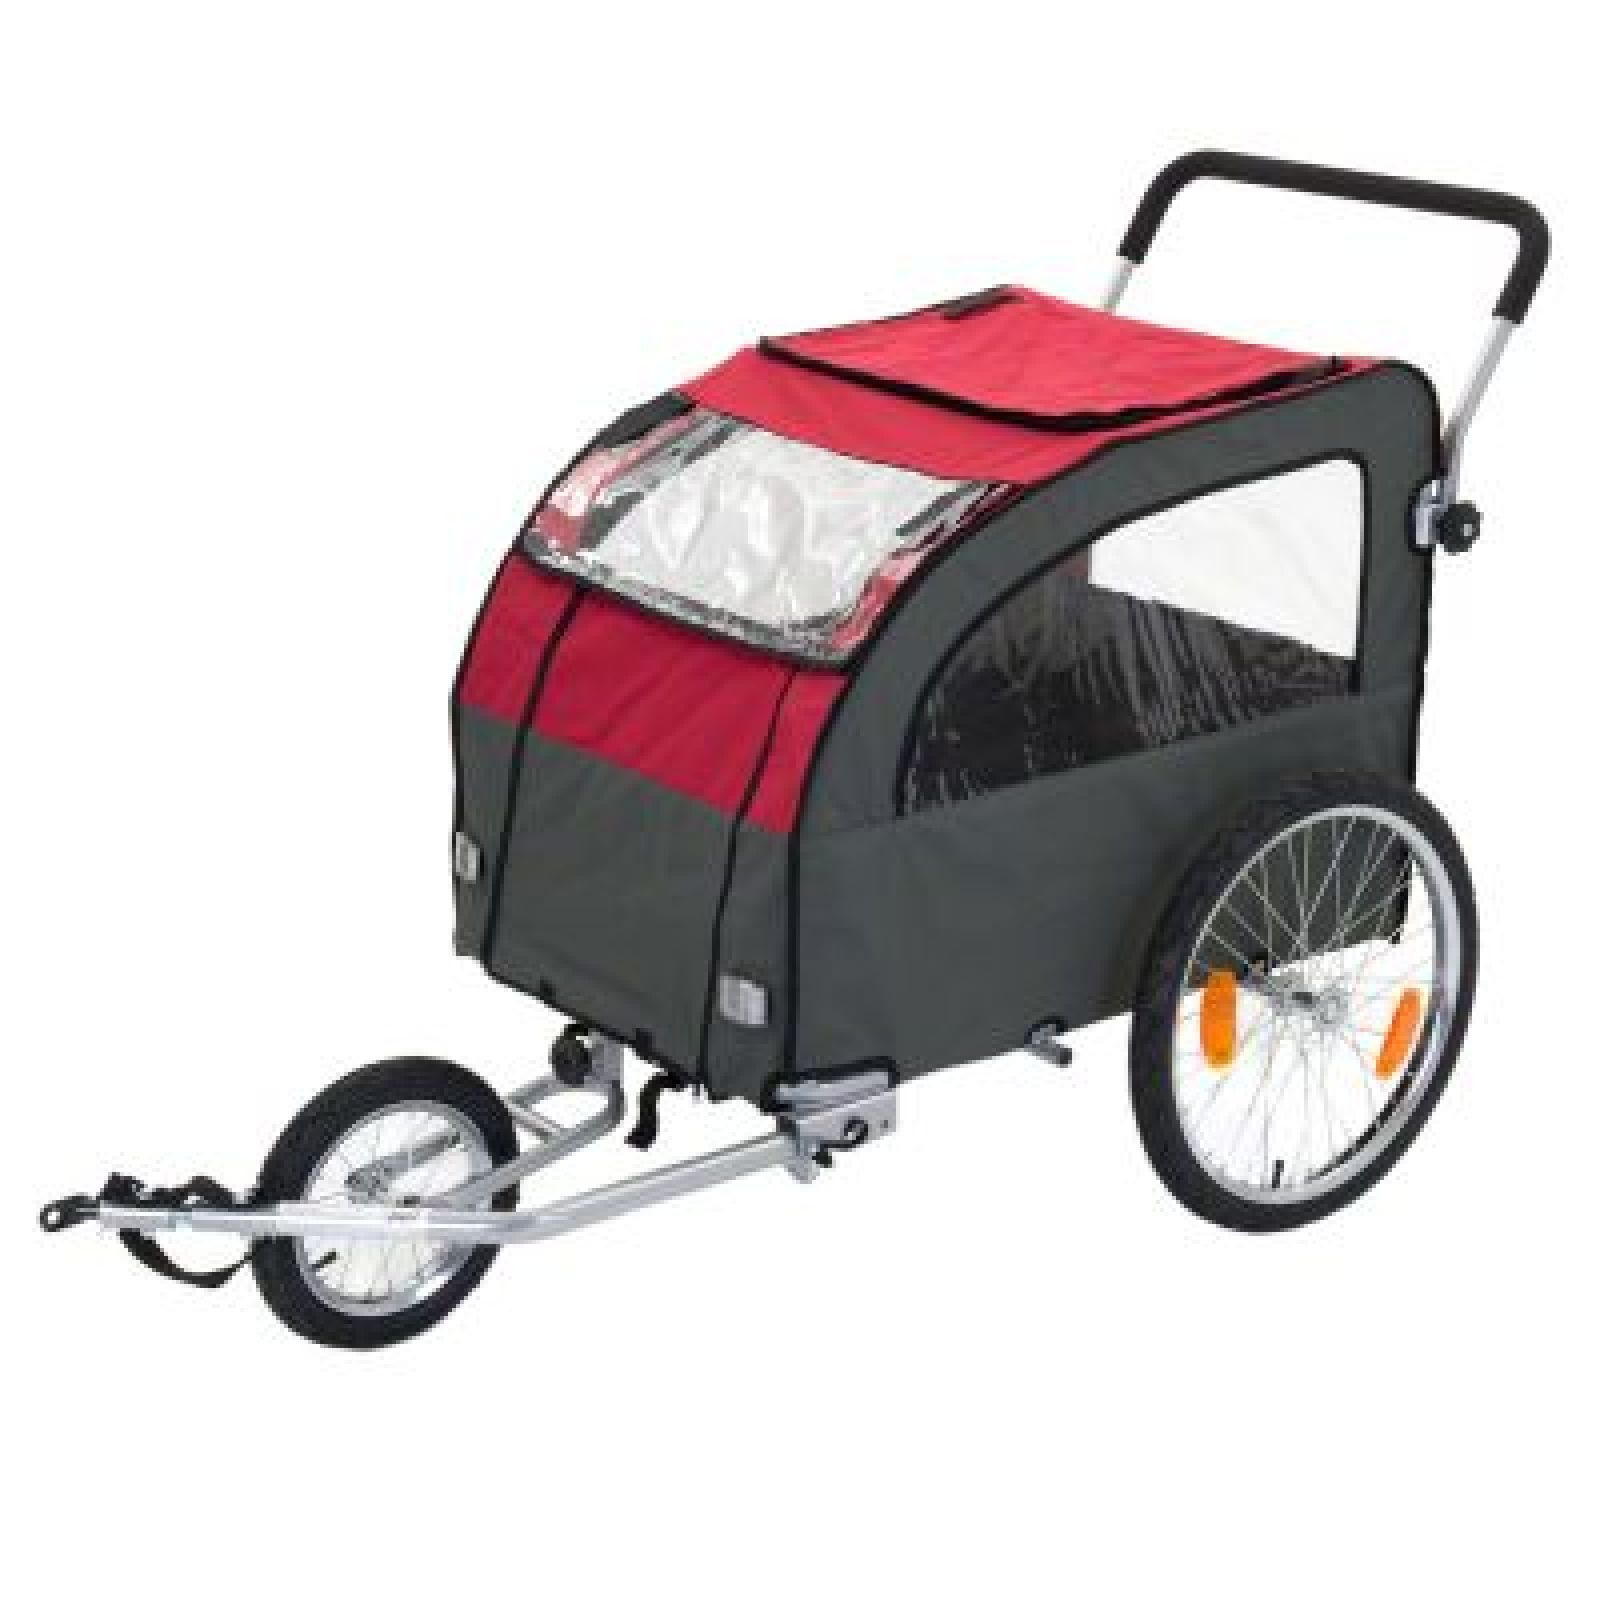 Large Dog Bike Trailer with Jogging Kit Bicycle Carriage Pet Carrier Cat Dog